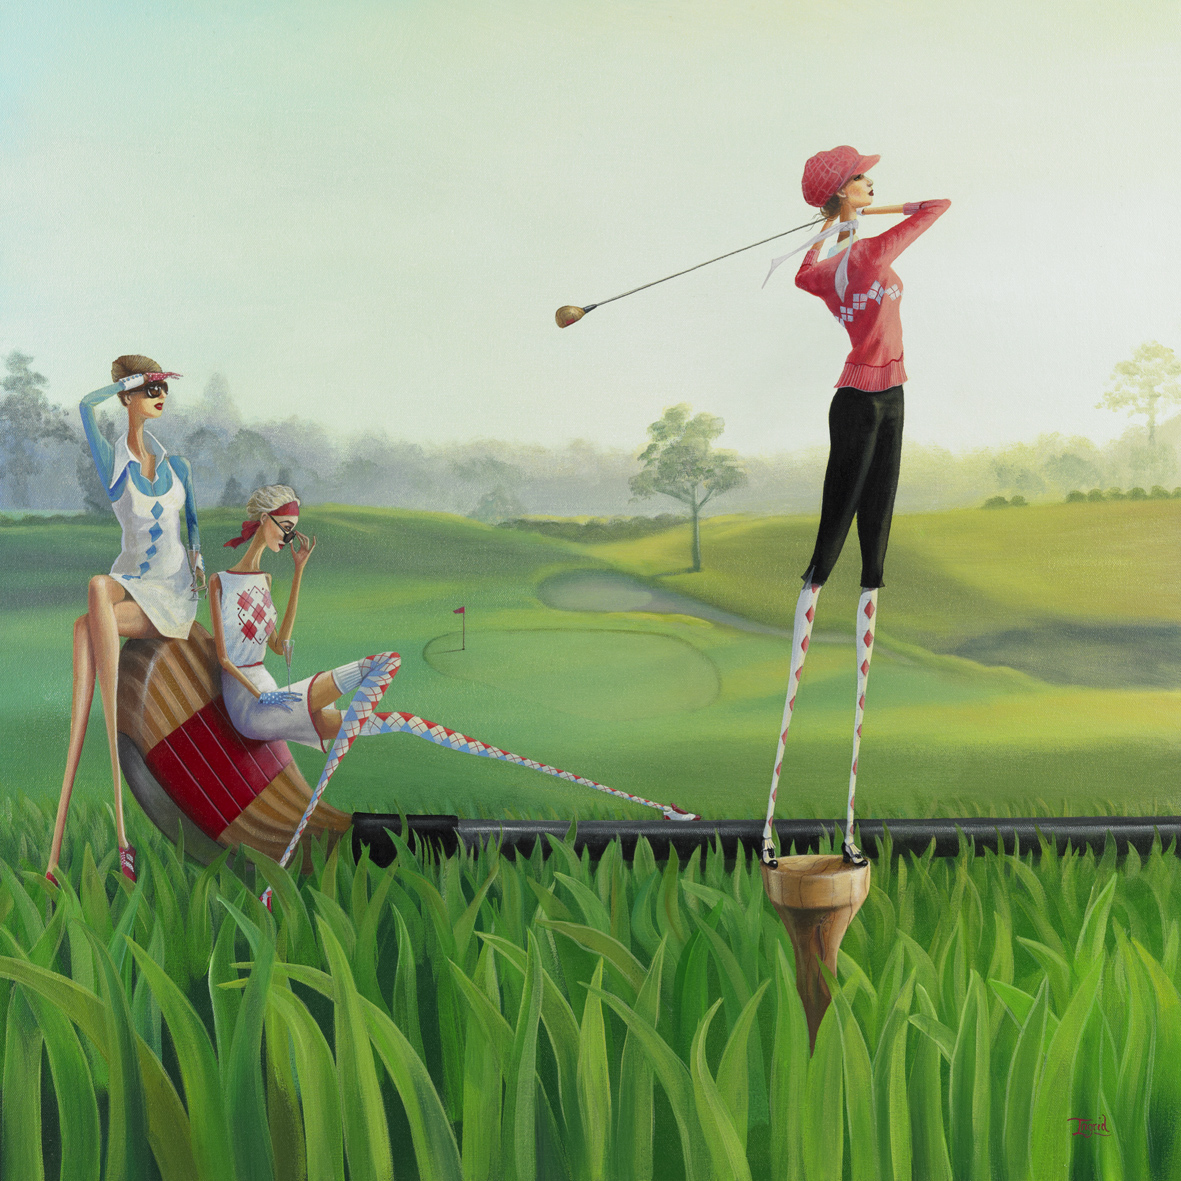 Tee Off - SOLD